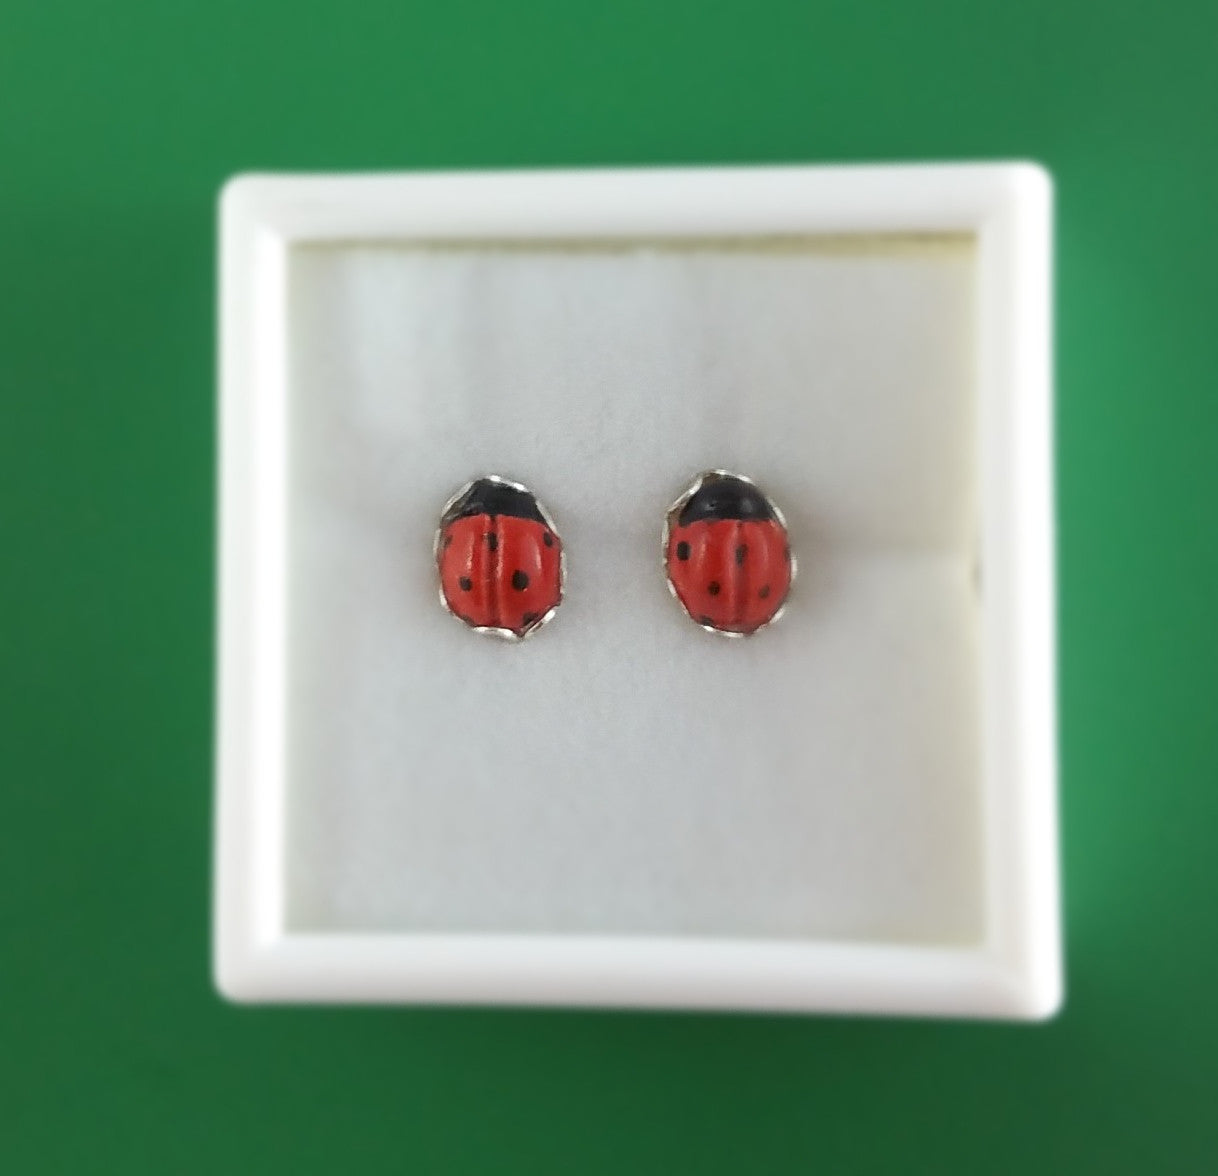 Small porcelain ladybug stud earrings with silver by Joseph Chiang